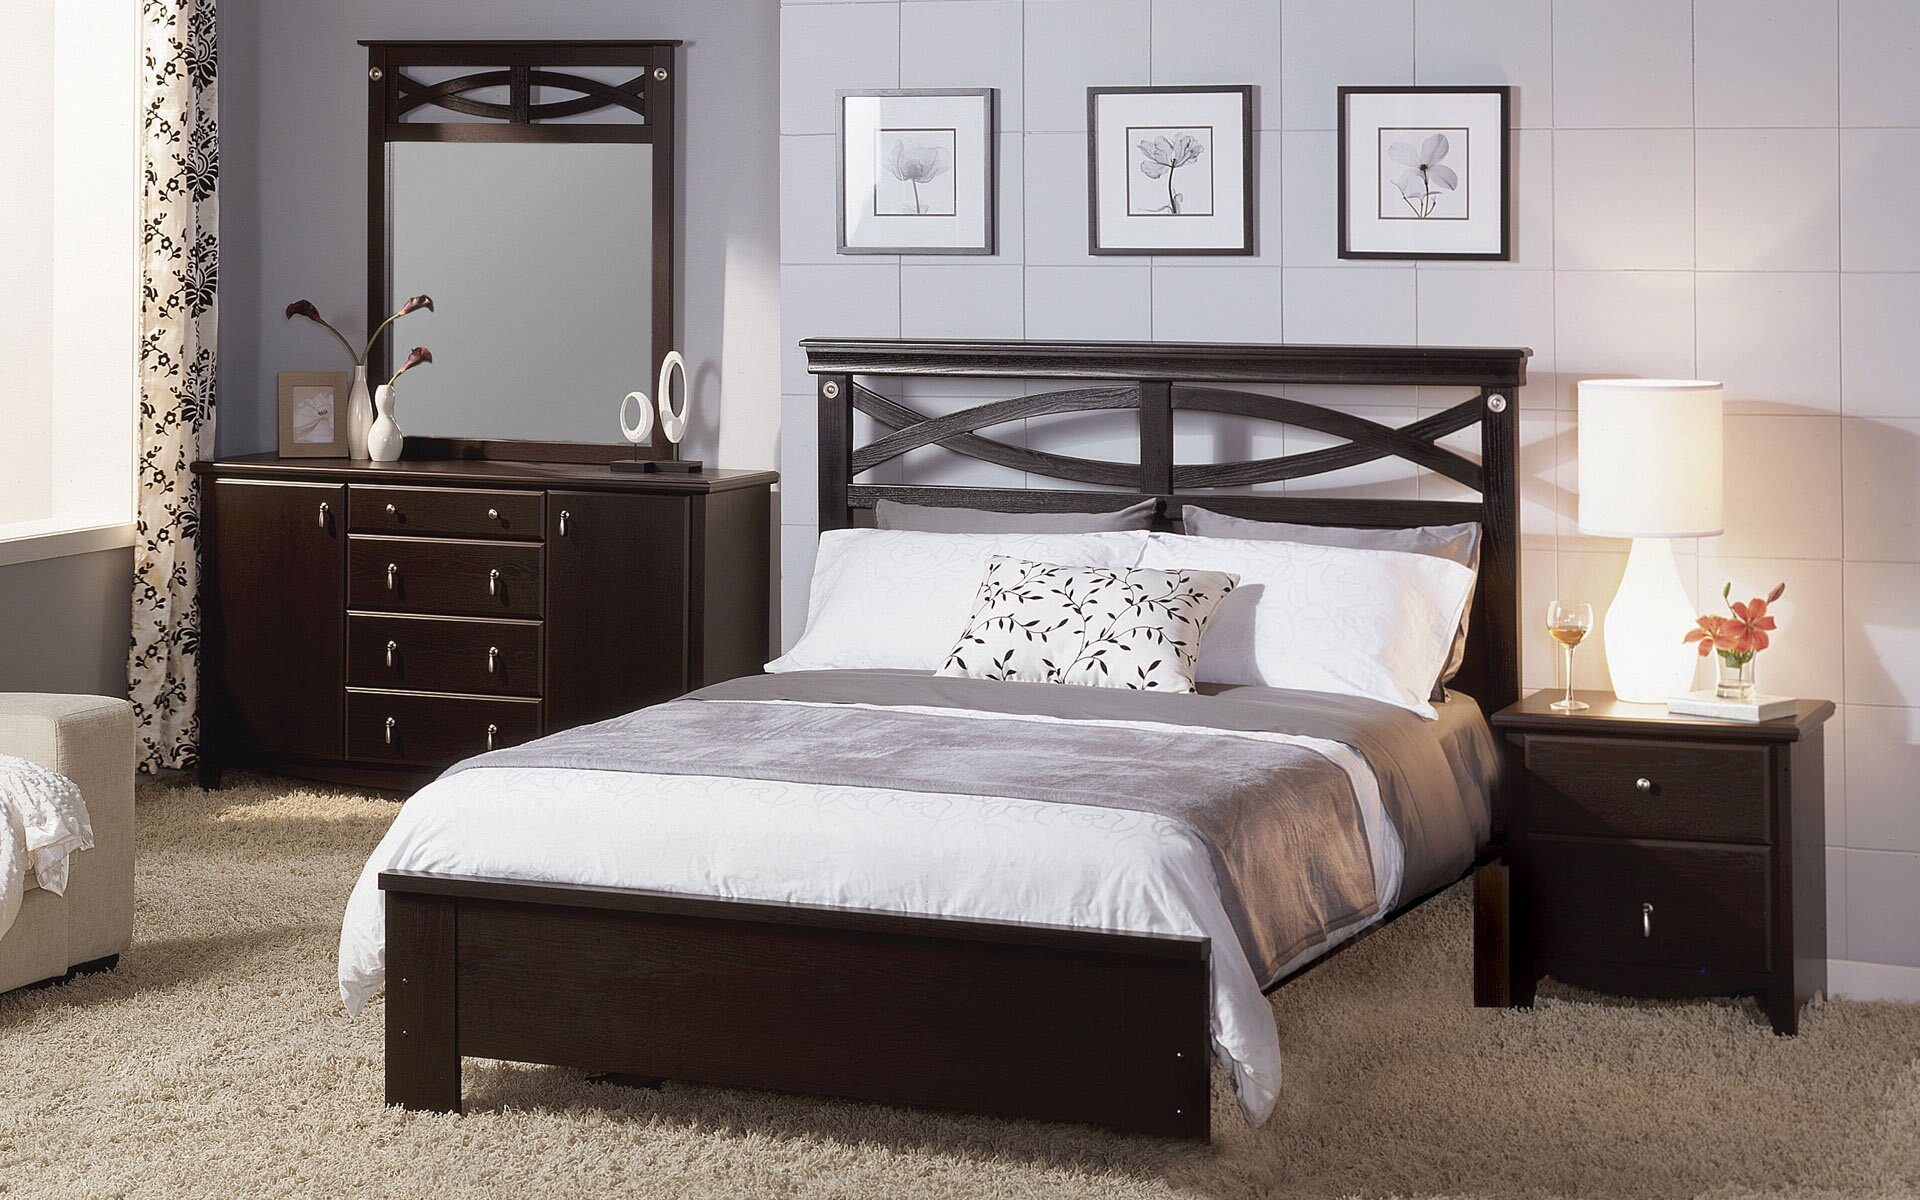 Craigslist Bedroom Set | Craigslist Bedroom Sets | Bedroom Sets for Sale Craigslist